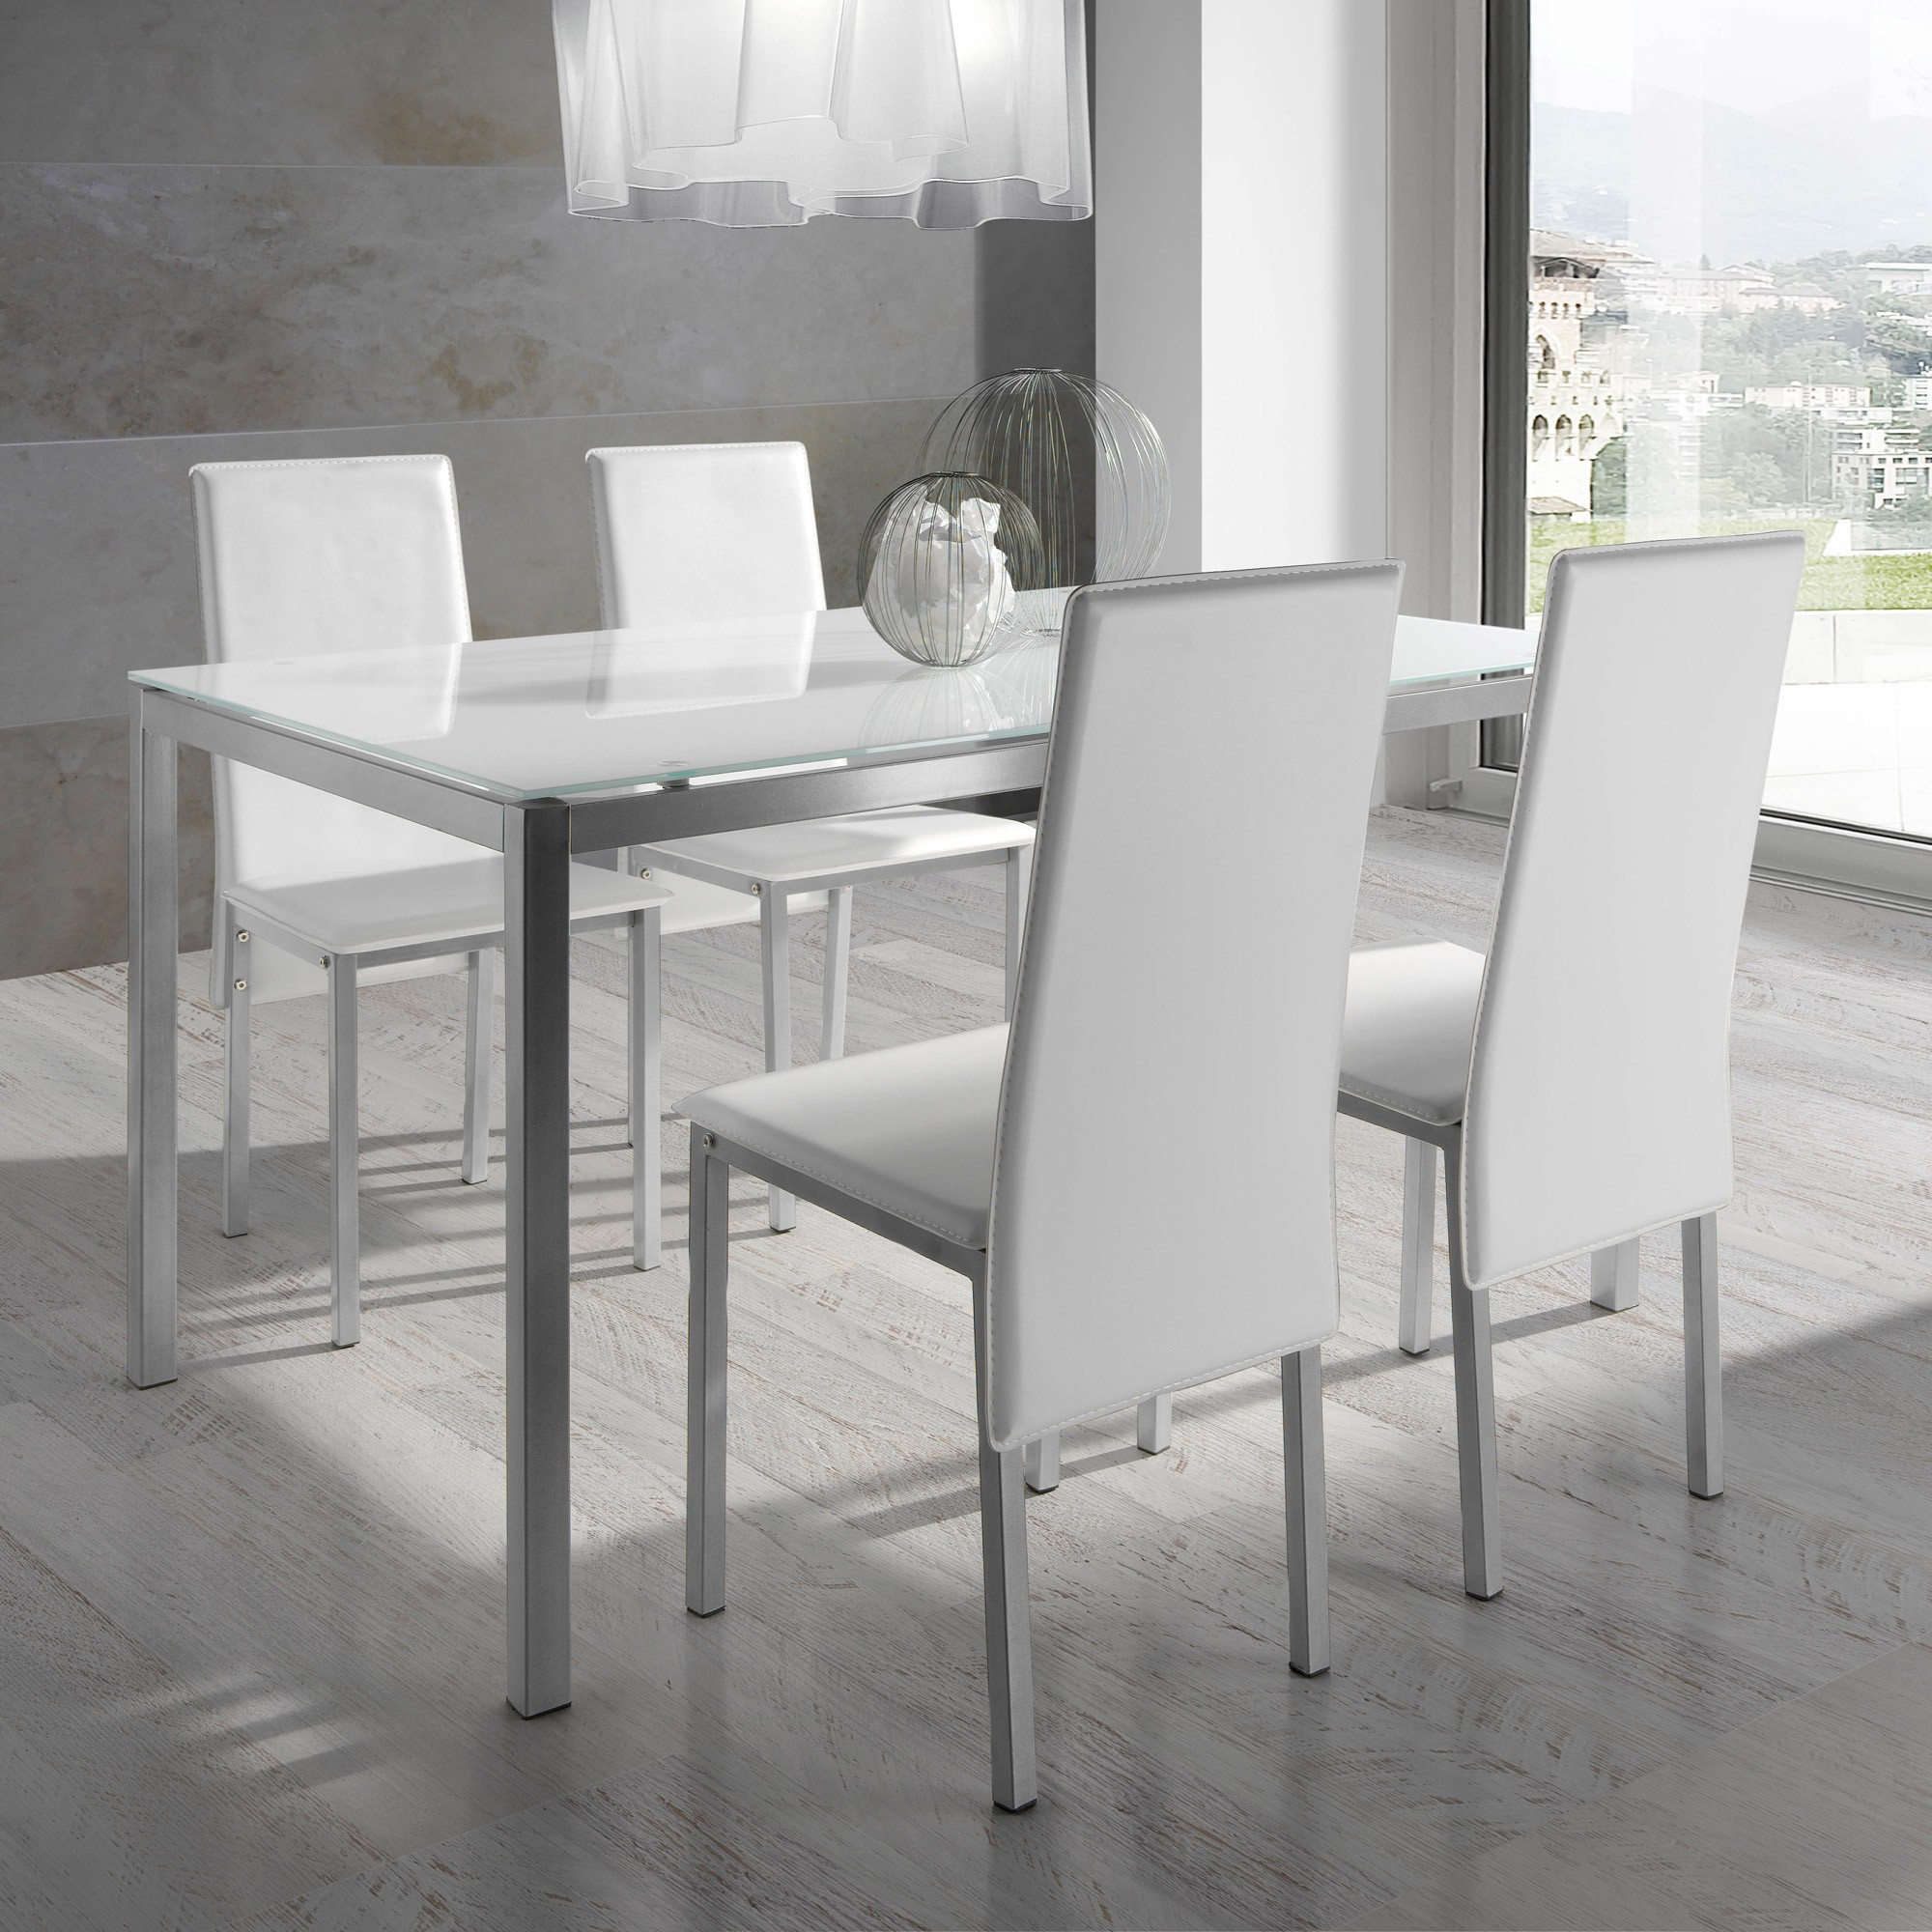 Ensemble table et chaise salle a manger but chaise for Table salle a manger chaises